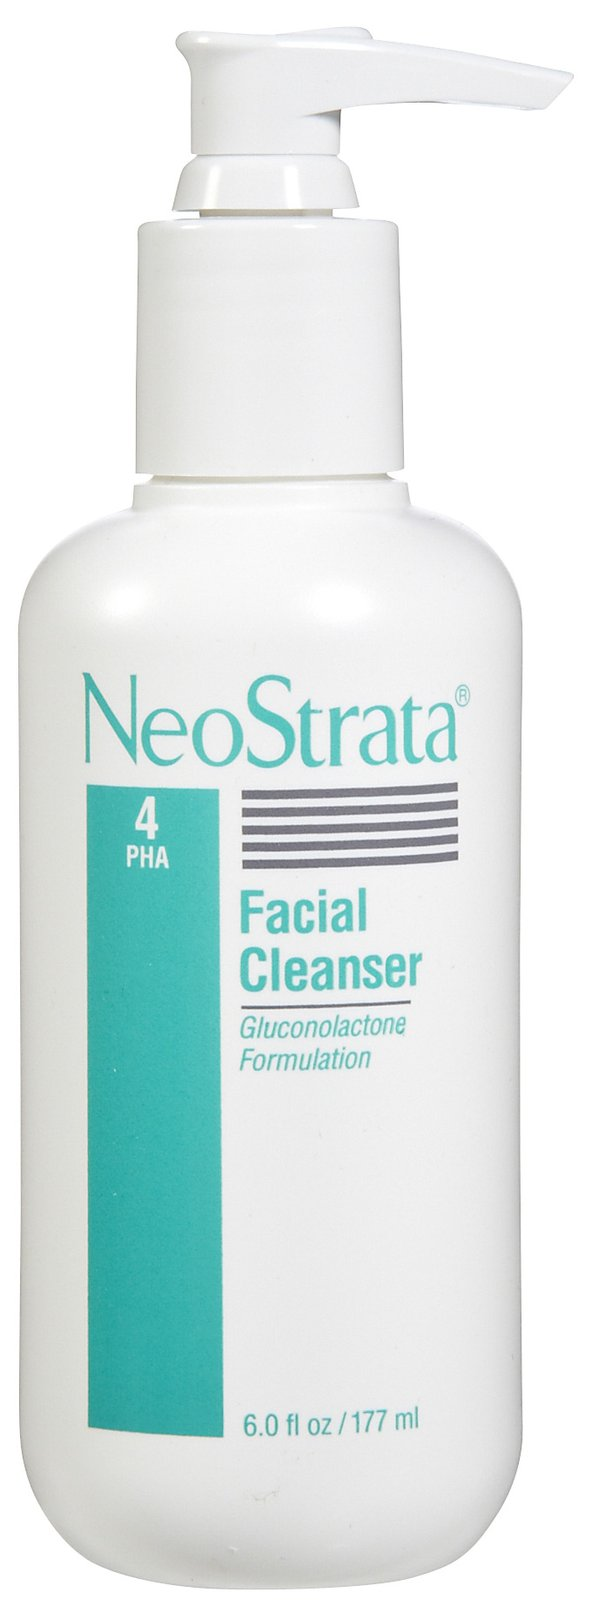 NeoStrata Facial Cleanser - PHA 4 6oz